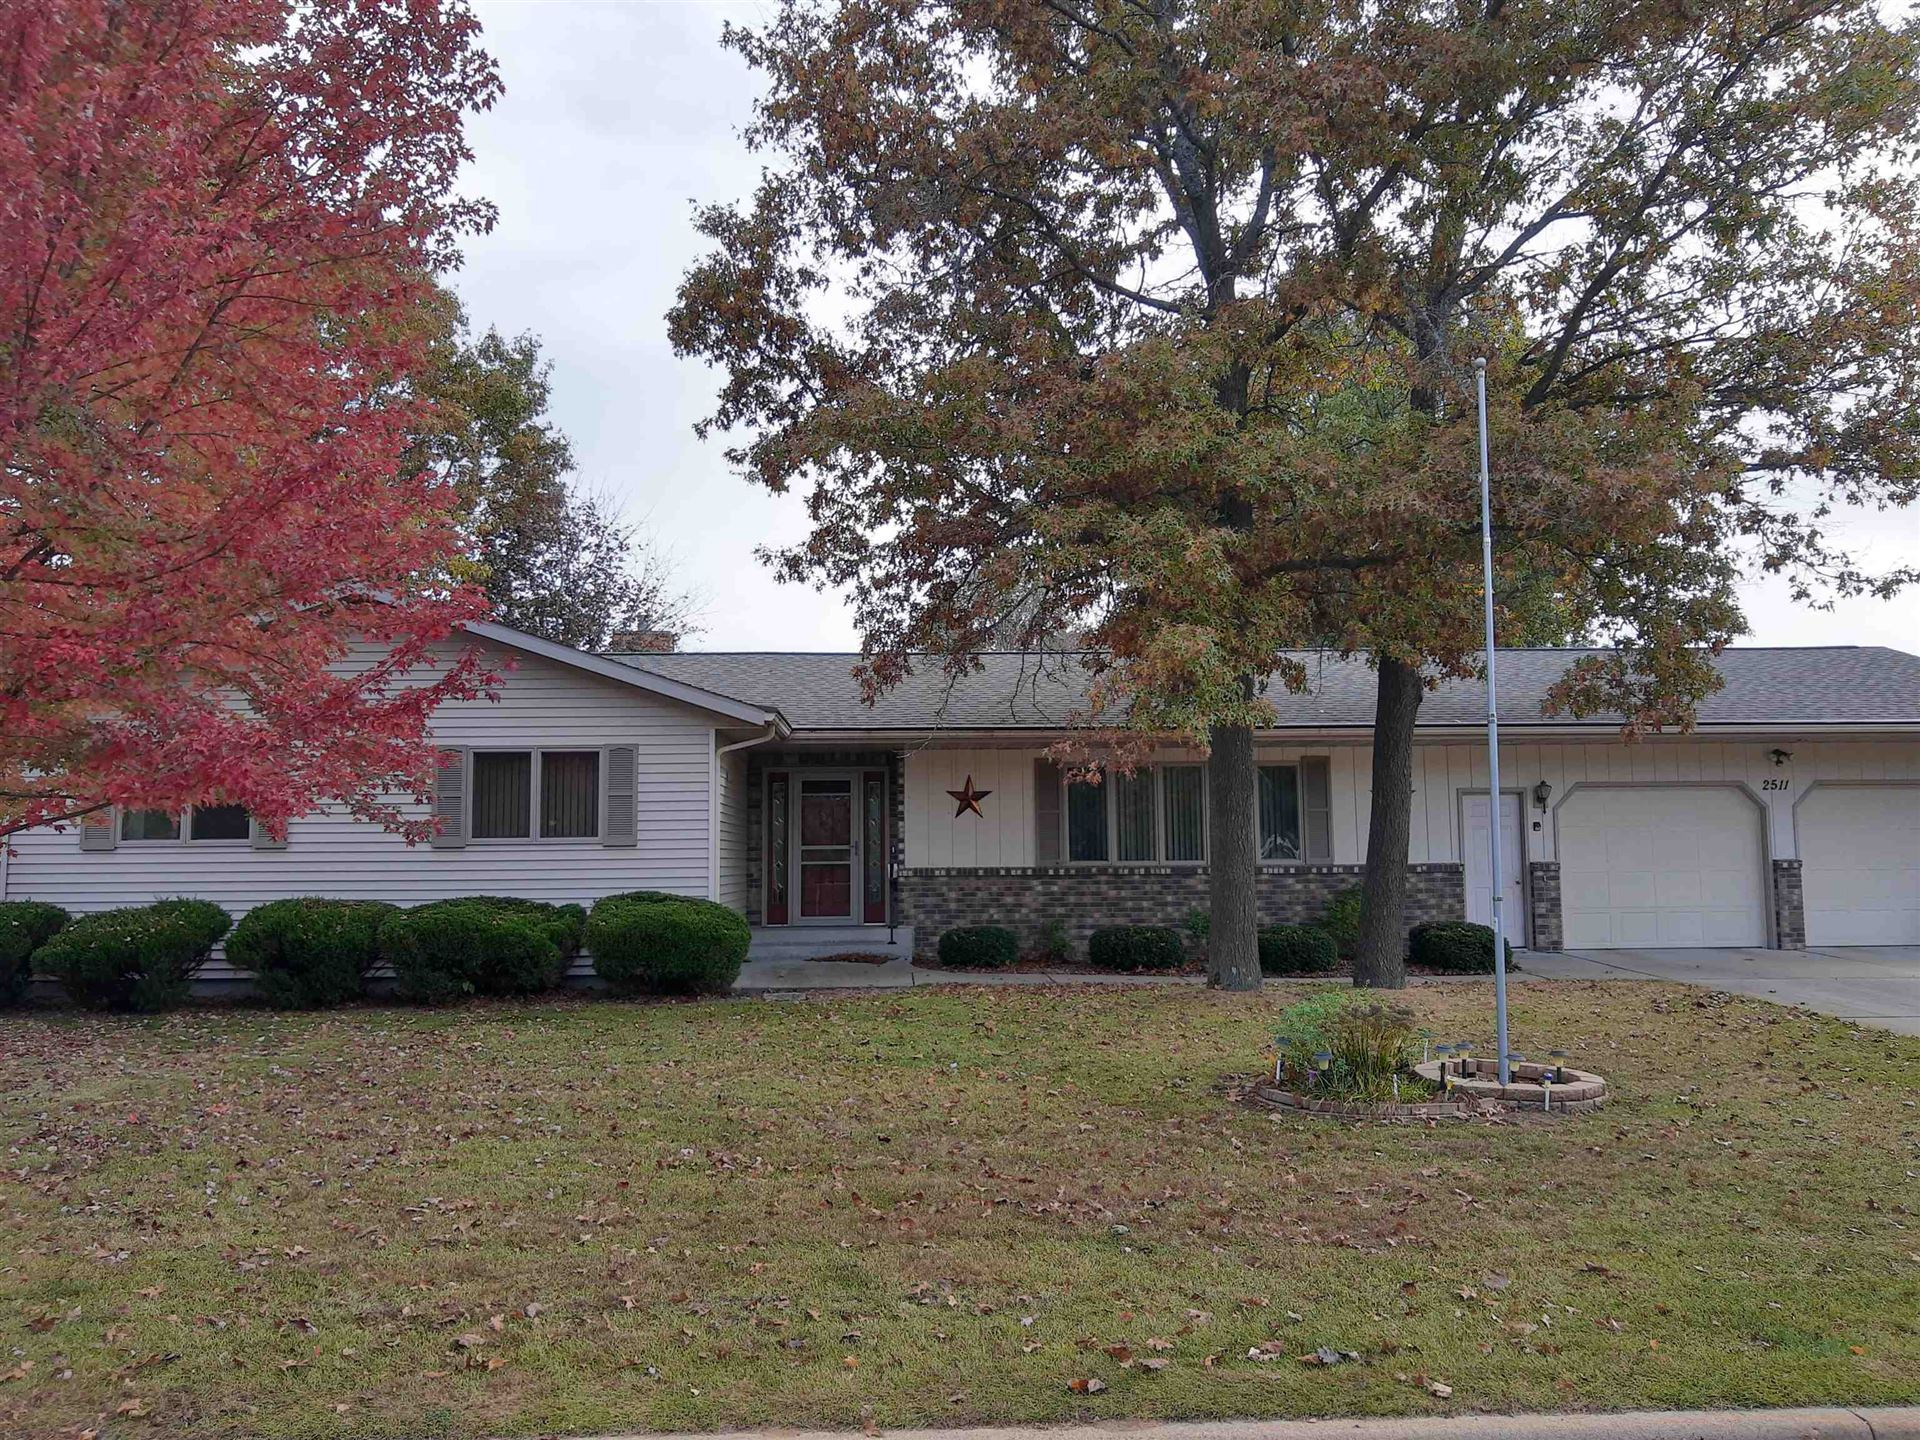 2511 14th St, Wisconsin Rapids, WI 54494 - #: 1922049